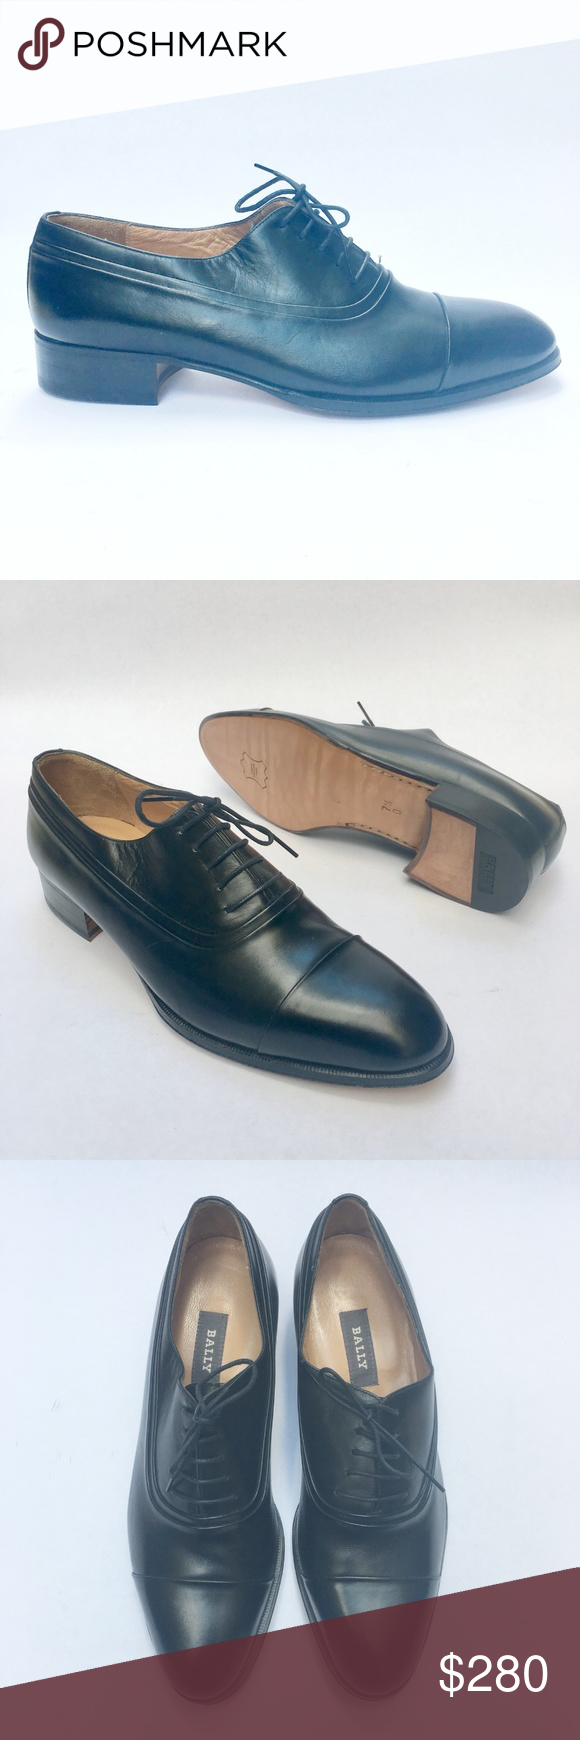 959bb1a005c Bally Oxfords Cap Toe Cagney Black Dress Shoes 7.5 Bally Men s Shoes Cagney Black  Lace Up